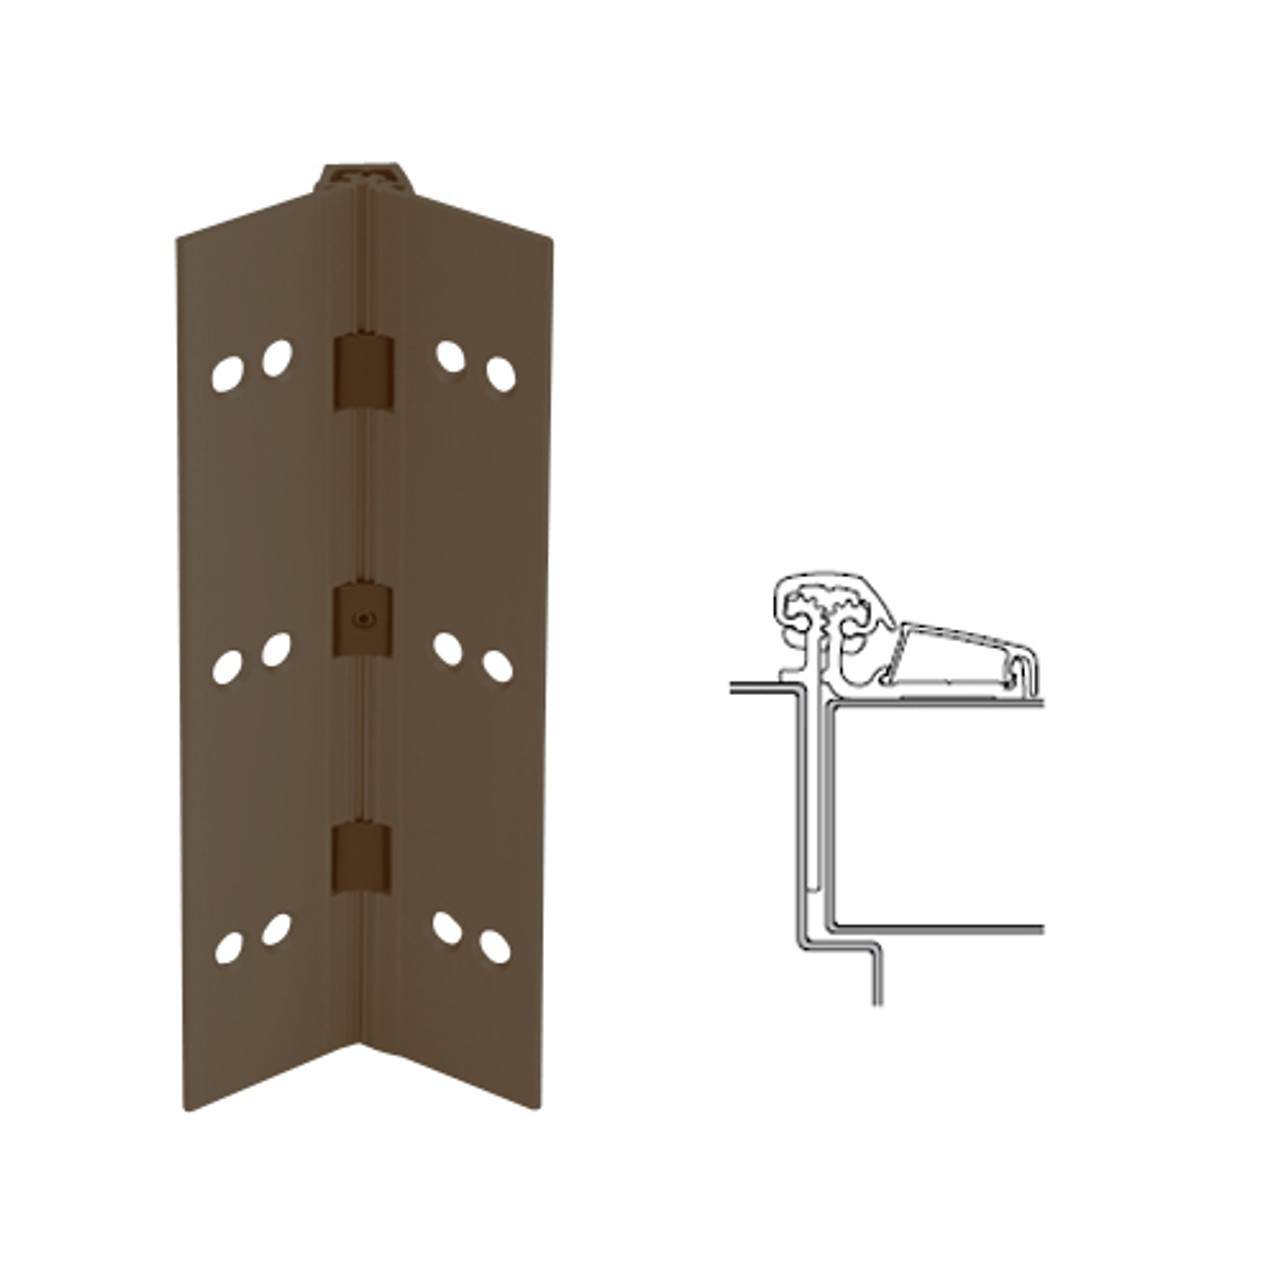 053XY-313AN-83-SECWDWD IVES Adjustable Half Surface Continuous Geared Hinges with Security Screws - Hex Pin Drive in Dark Bronze Anodized